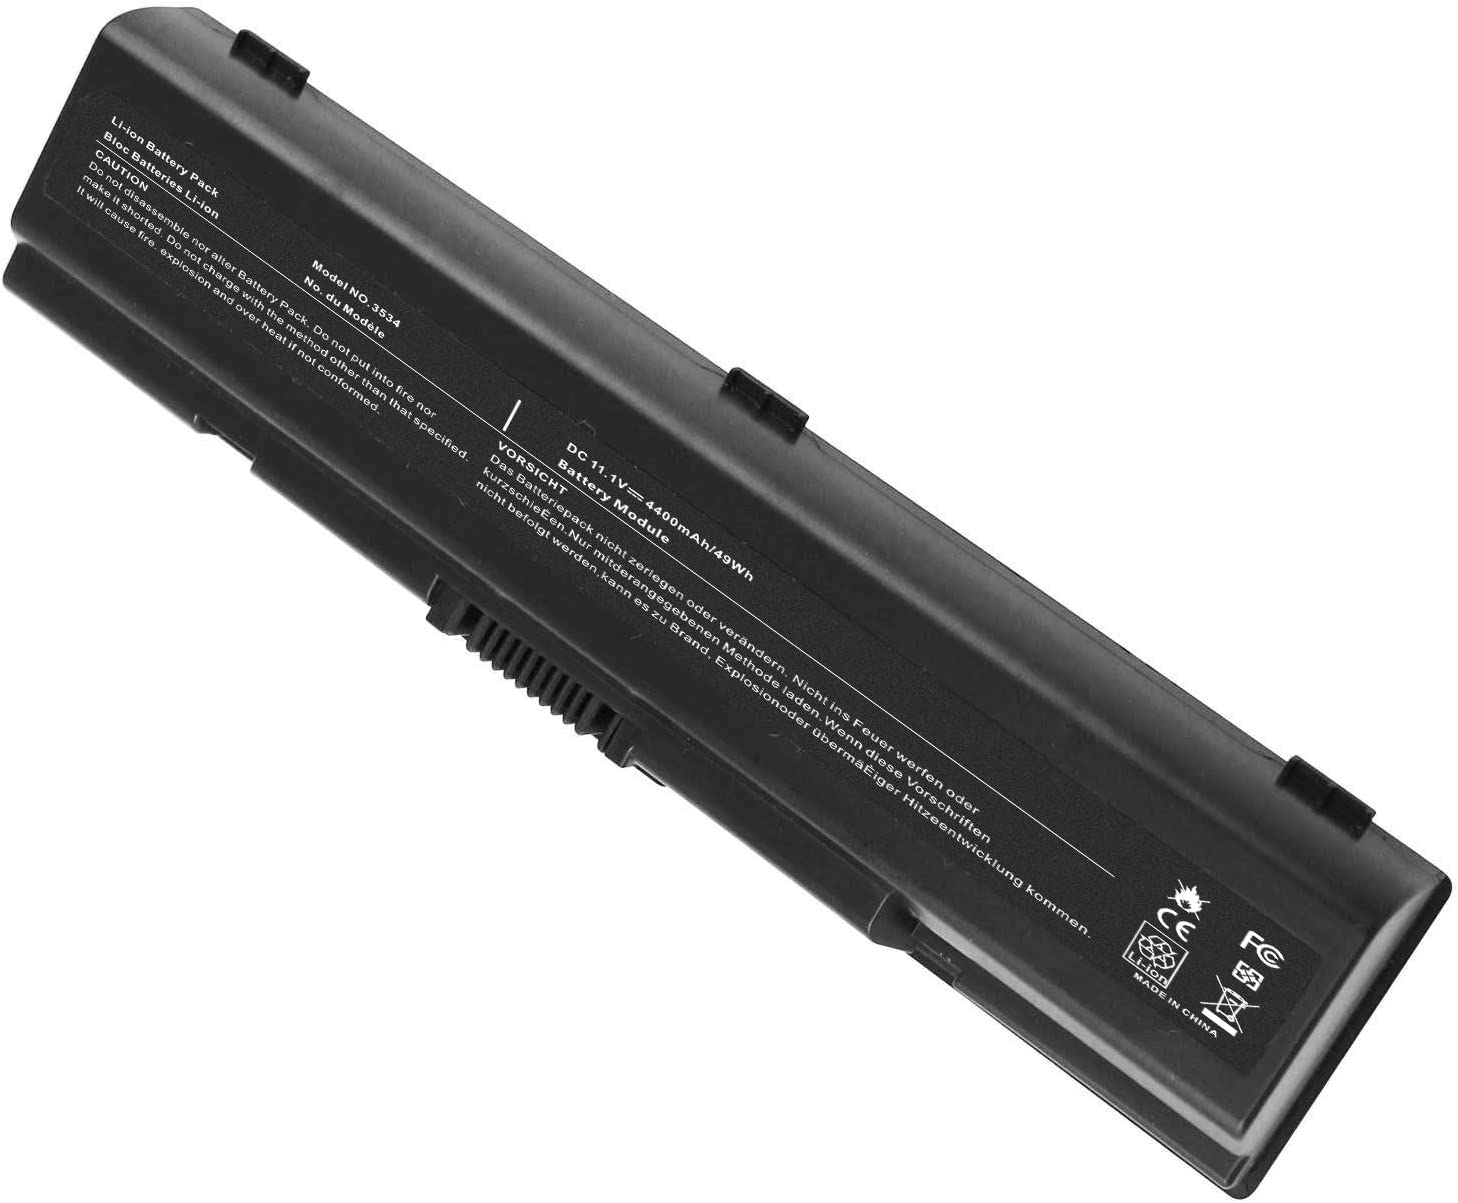 AC Doctor INC Laptop Battery for Toshiba Satellite A200 A205 A210 A215 A300 A300D A305 A500 A505 L200 L300 L305 L455D L500 L505 L550 L555 M200 M205, 5200mAh/10.8V/6-Cell